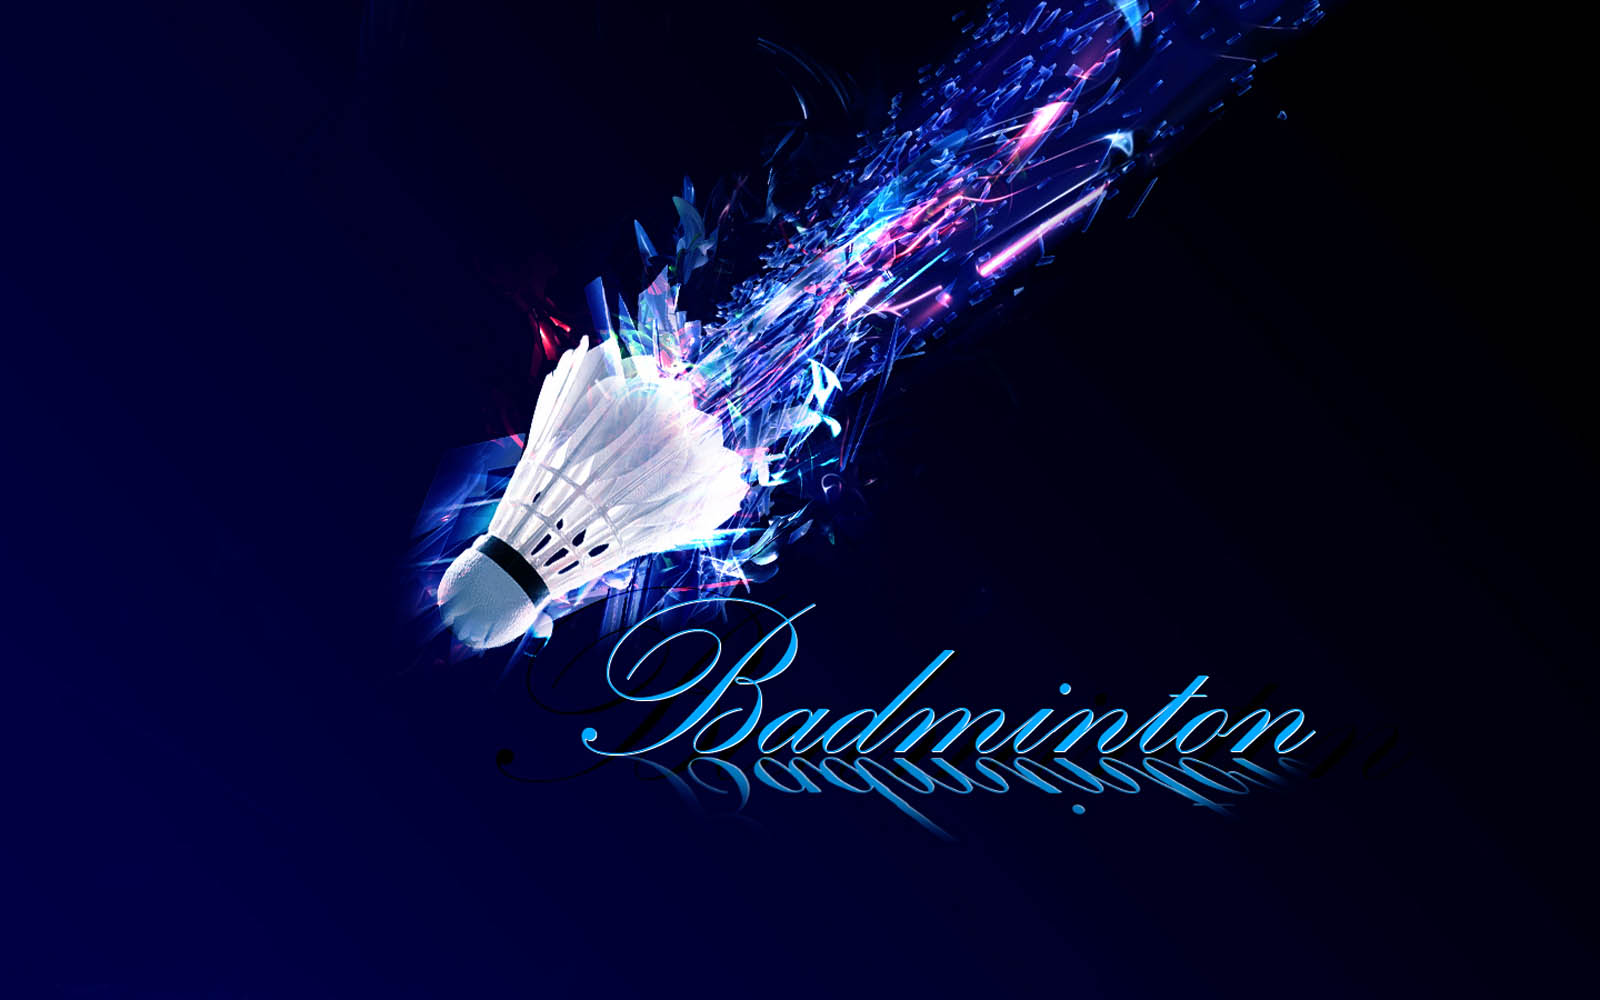 Badminton Quotes Wallpaper 12 Badminton Hd Wallpapers Backgrounds Wallpaper Abyss